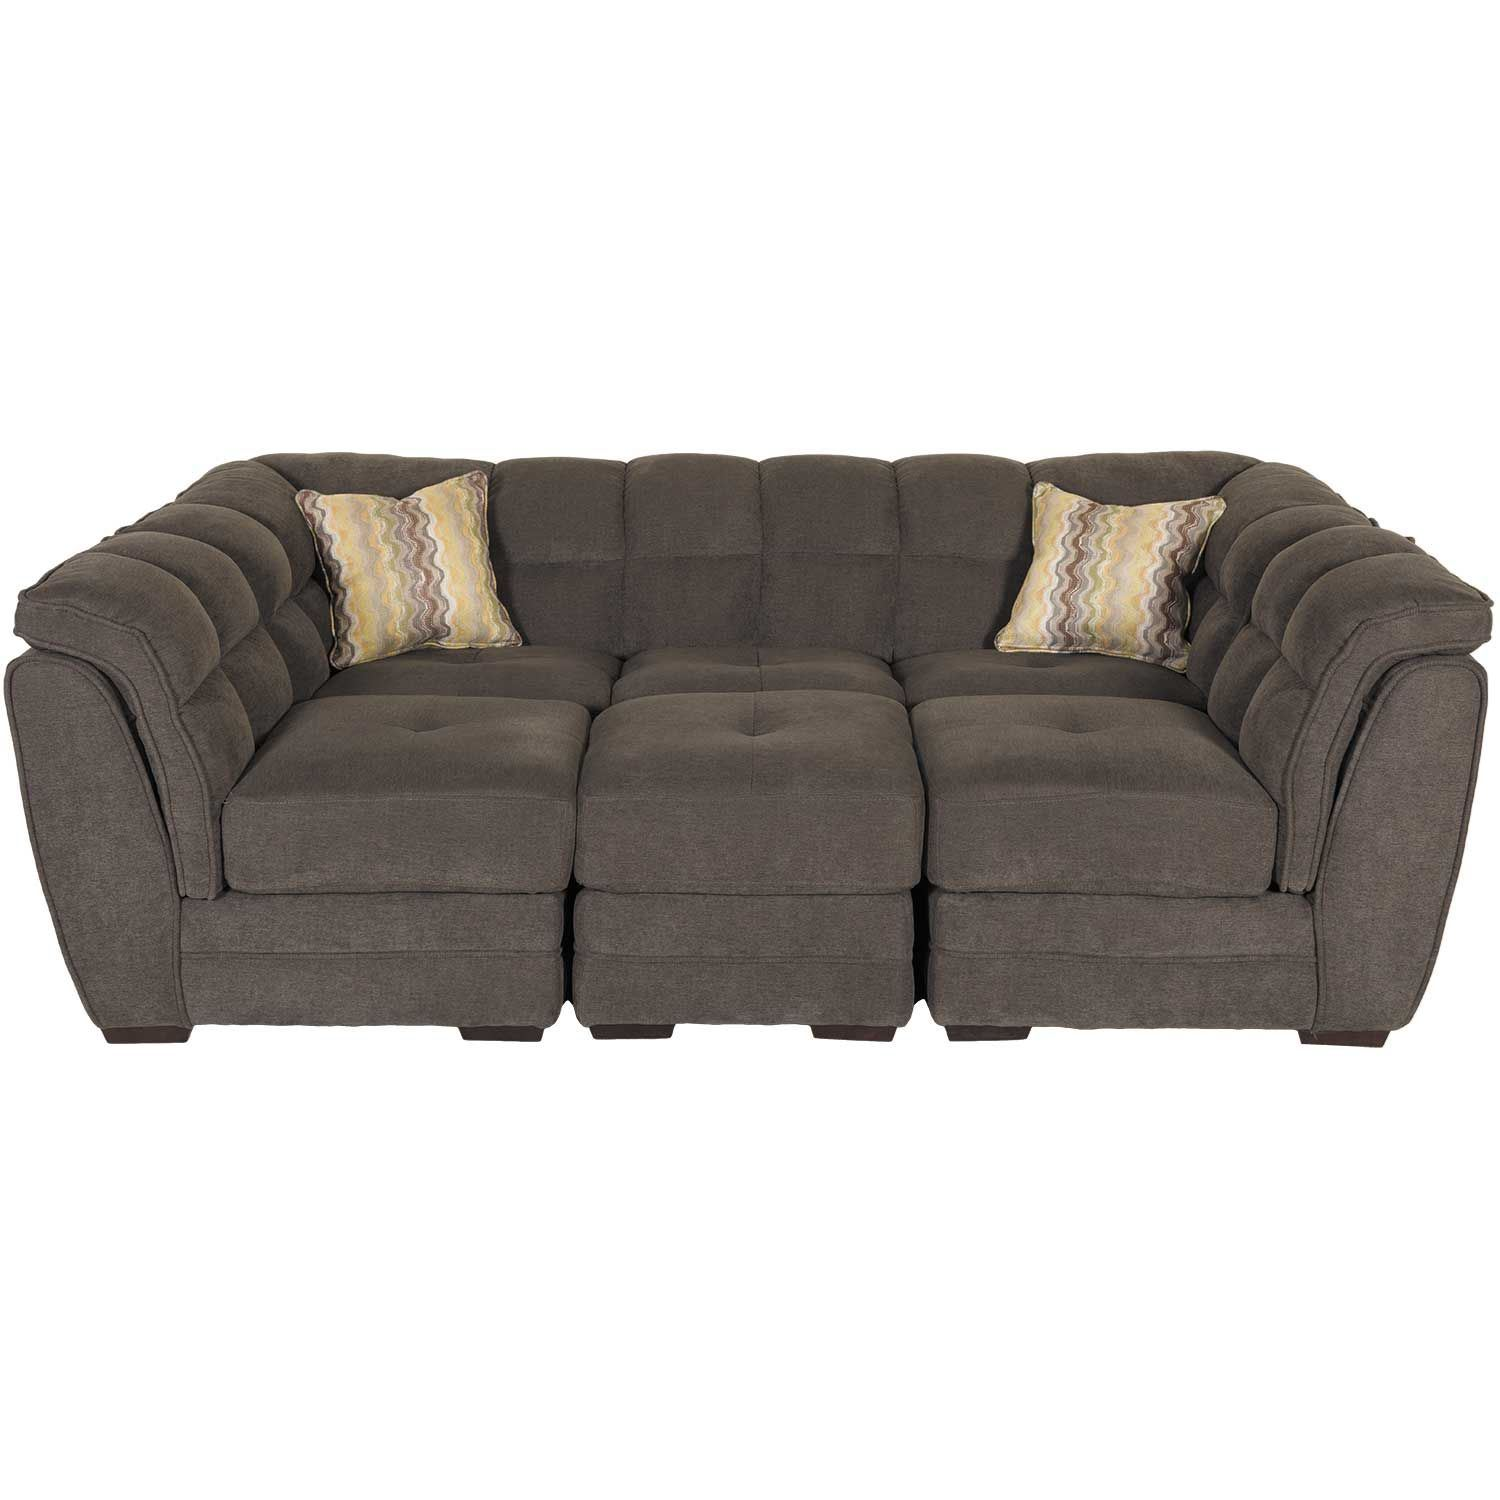 Clio Gray 4 Piece Pit Sectional